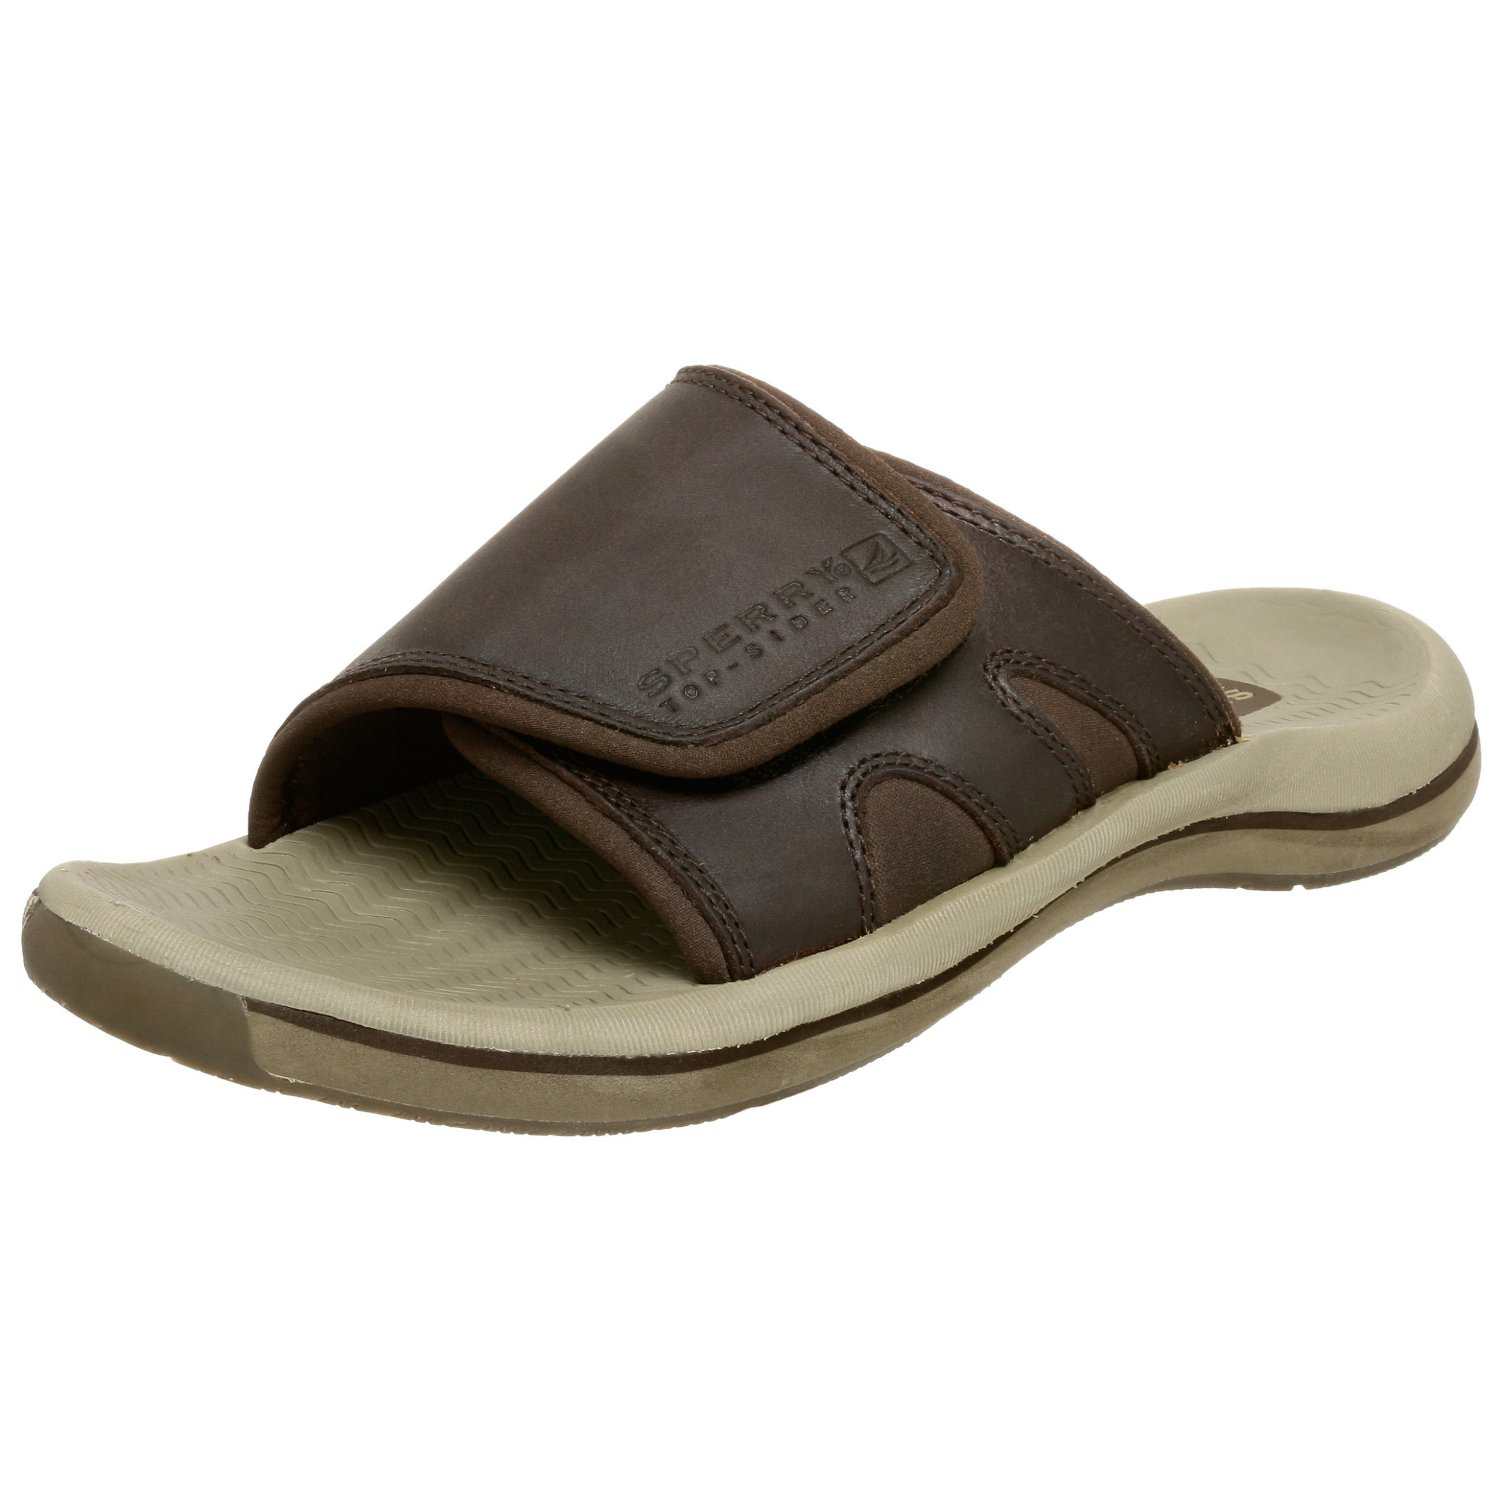 Best Mens Sandals 28 Images Top S Sandals For Summer